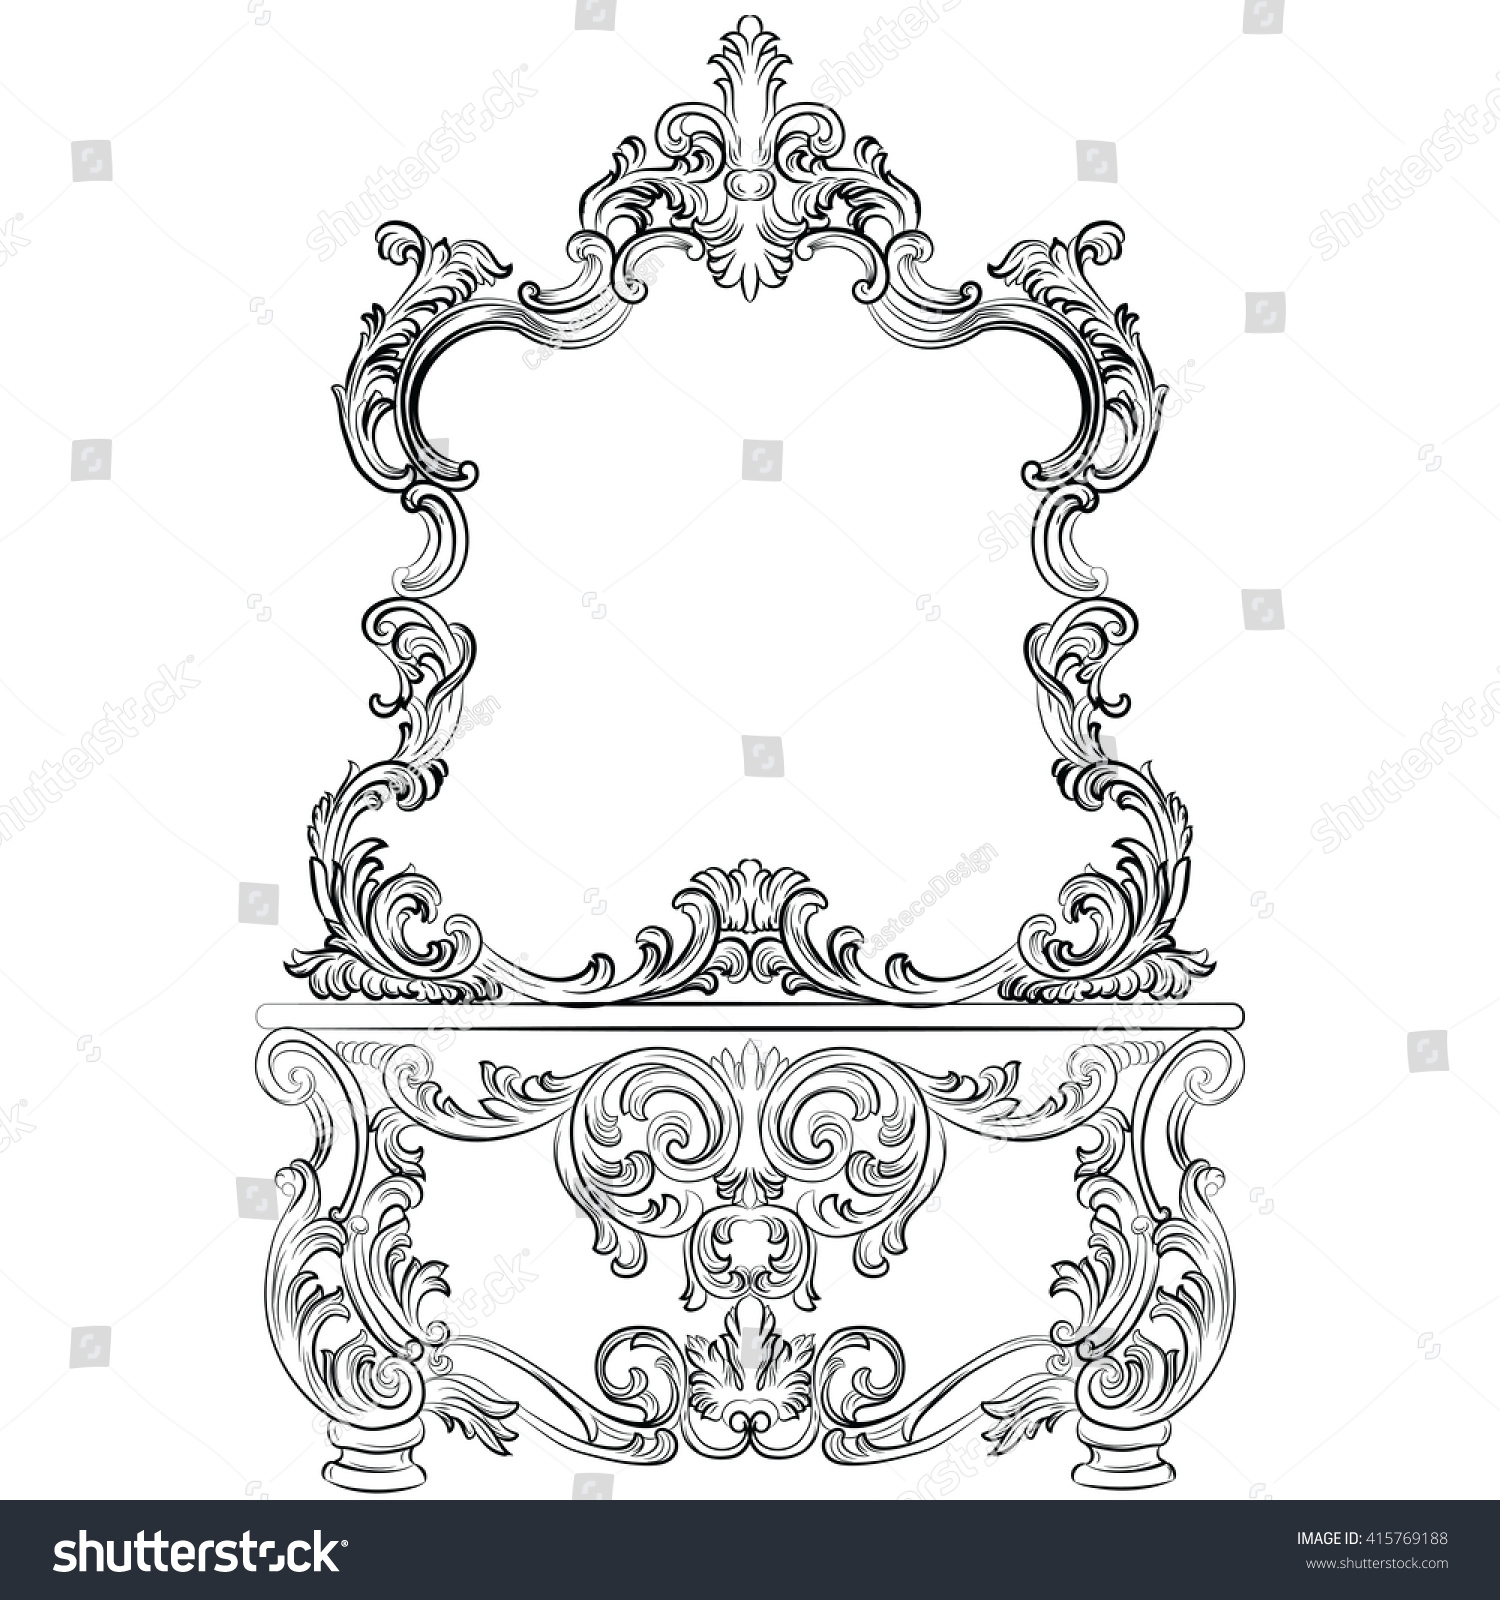 Rococo Furniture Sketch - Glamorous fabulous baroque rococo console table and mirror frame set french luxury rich carved ornaments